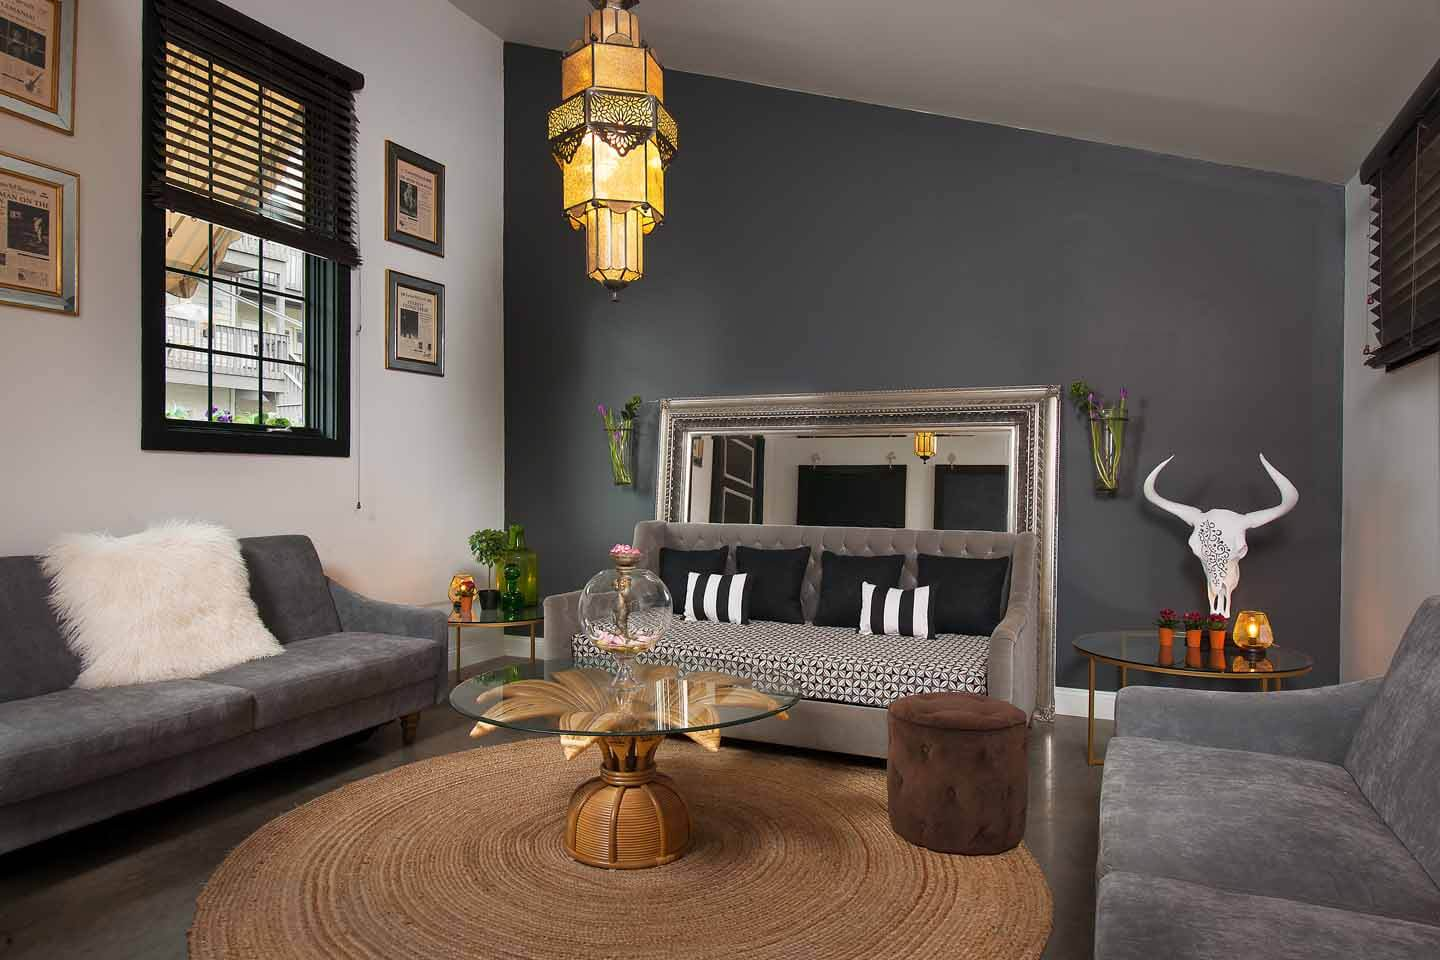 Living room designed by Esther Dormer with dark focal wall, three couches and antlers on the wall